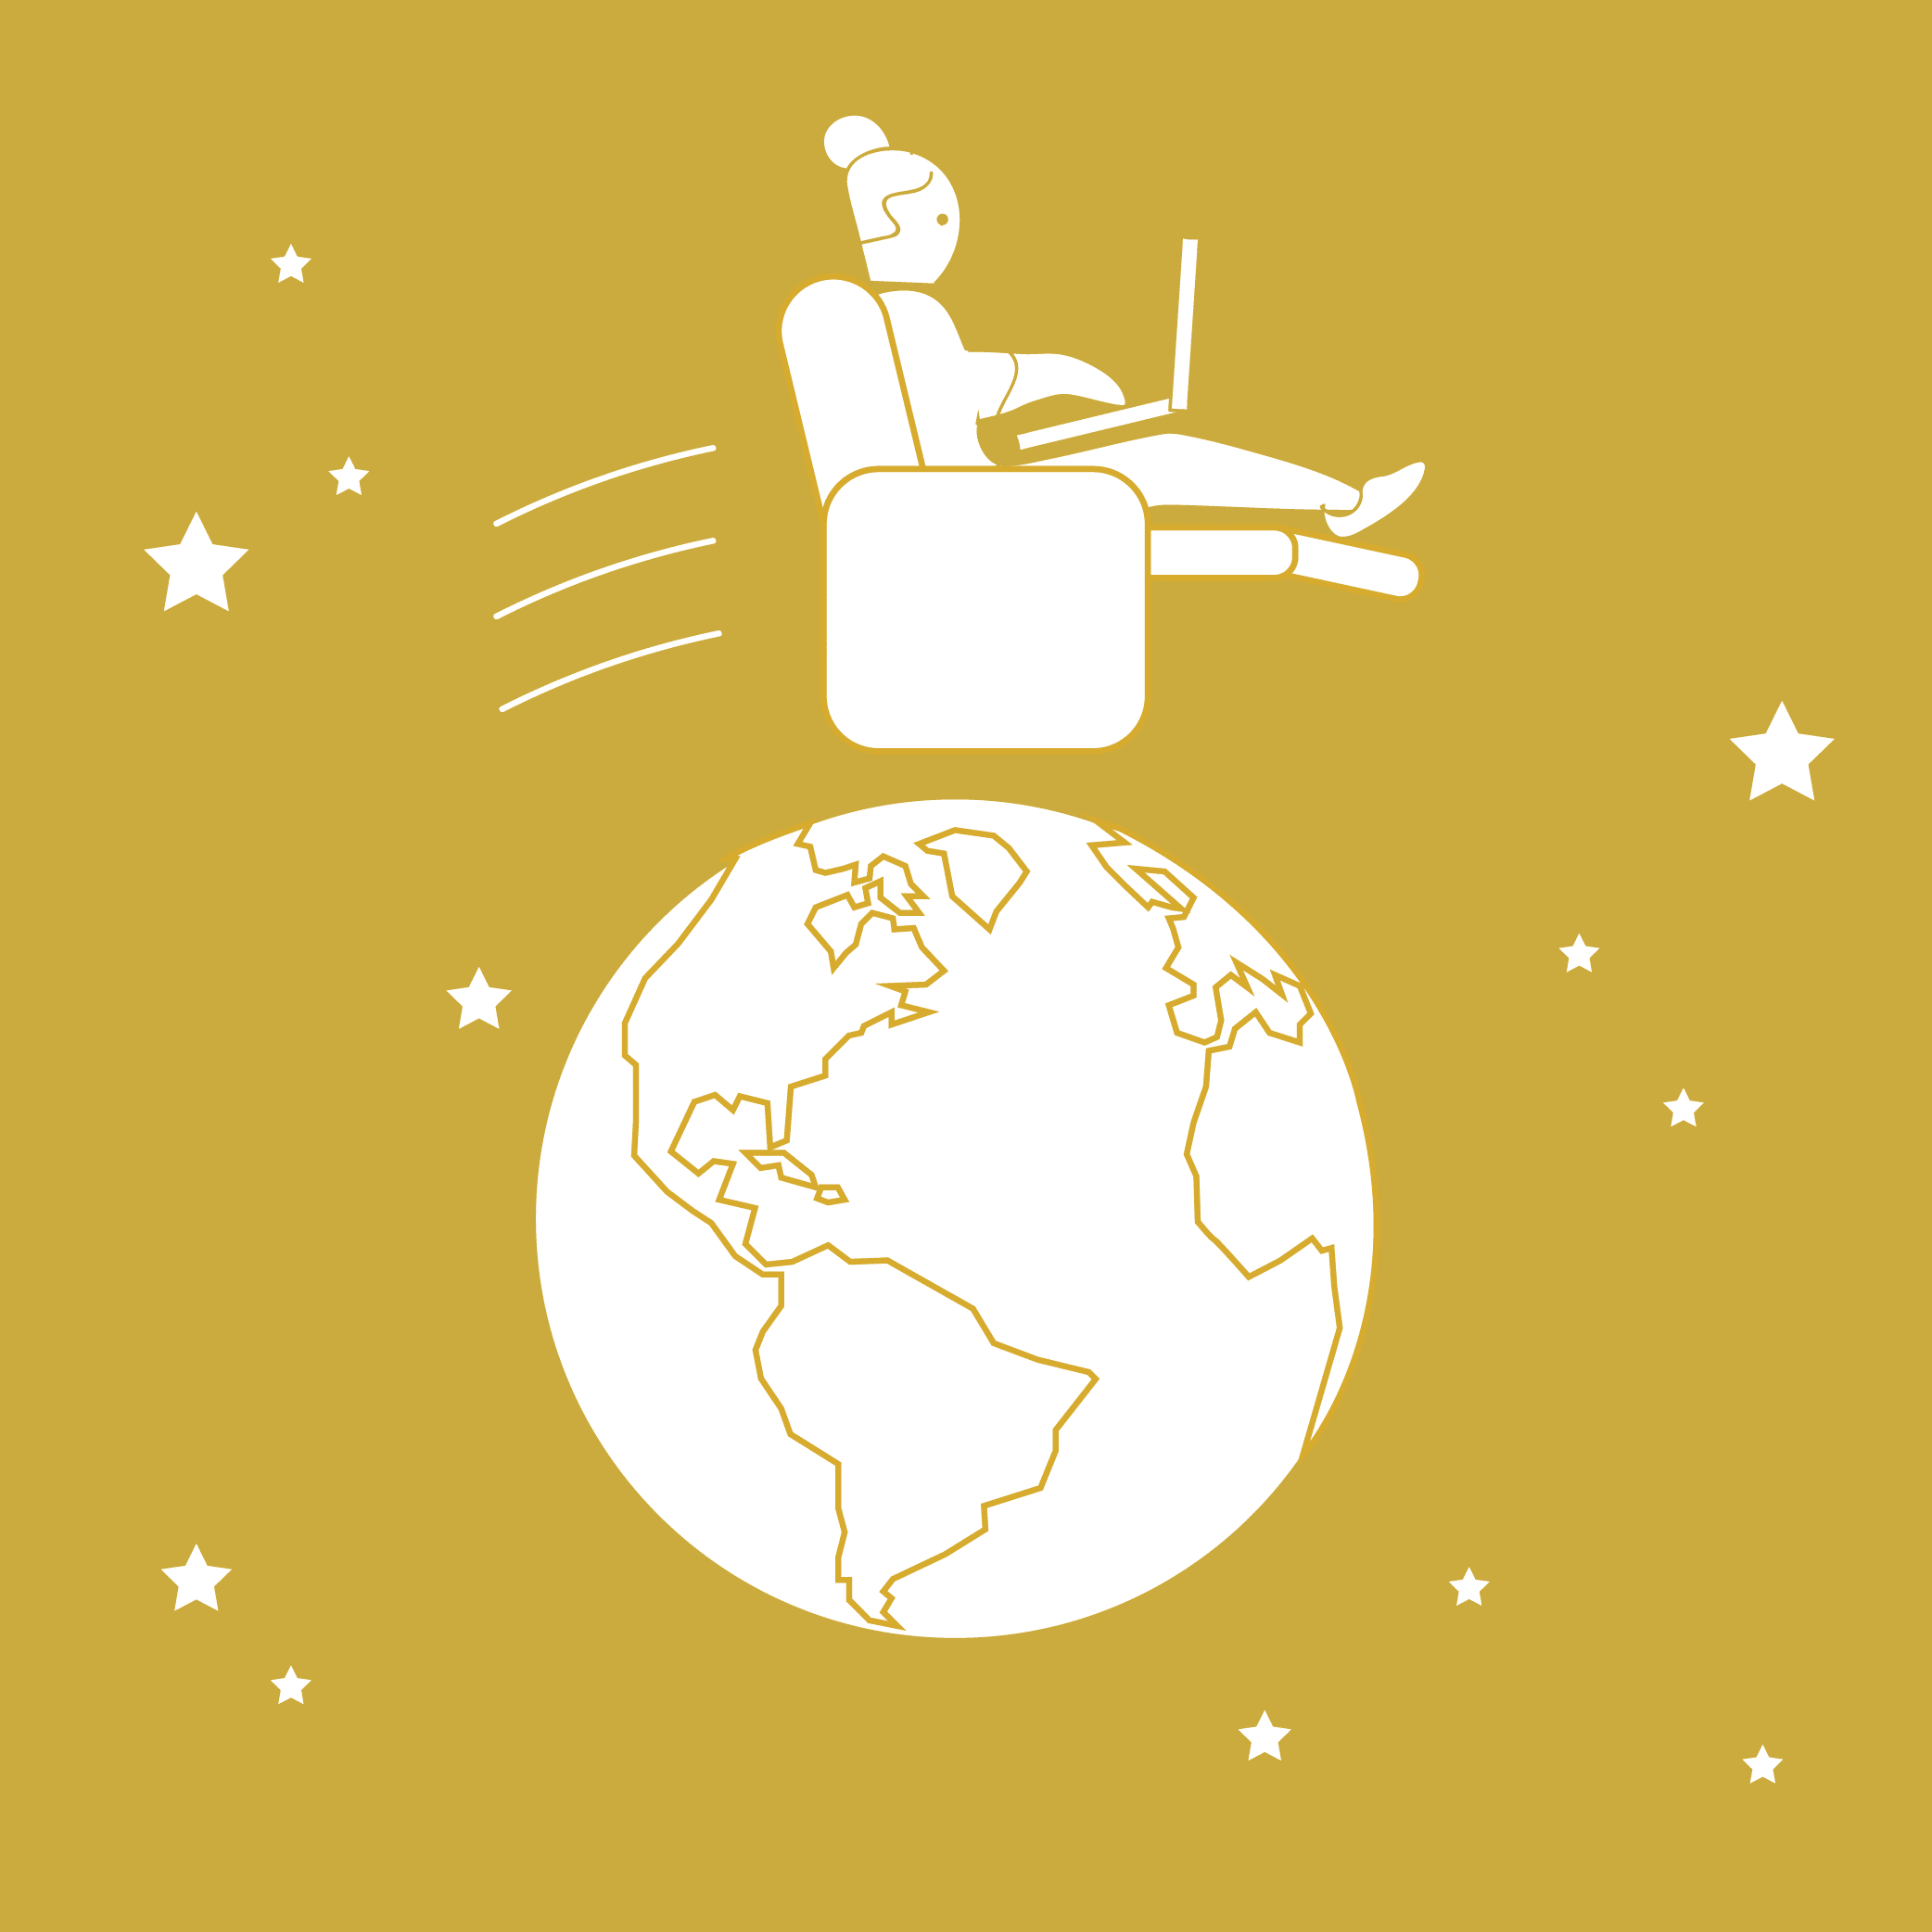 Illustration of a woman in a recliner using her website, soaring around the globe.